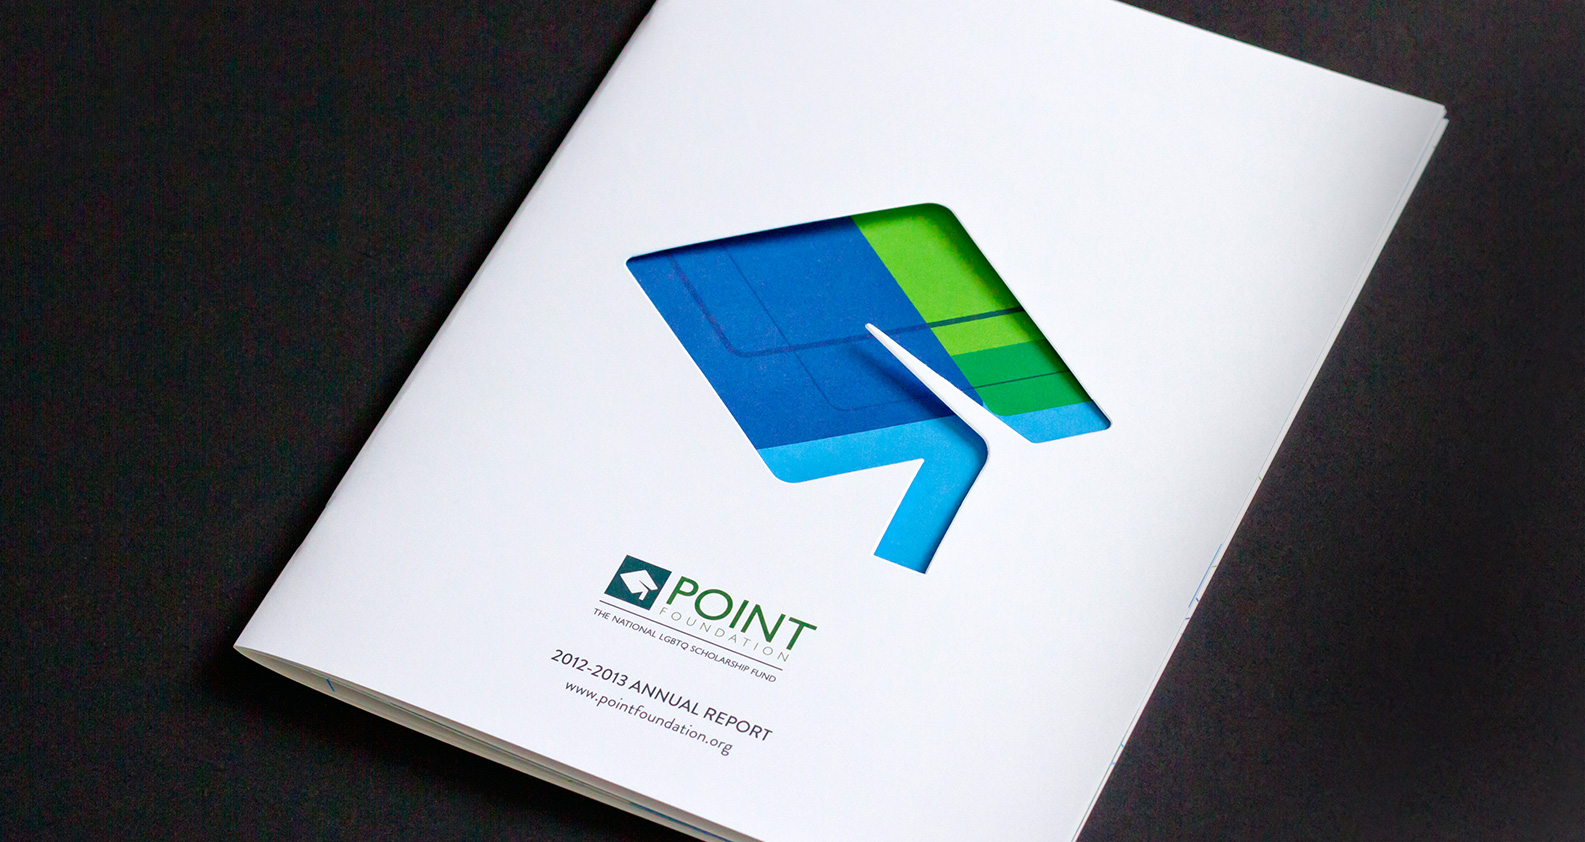 POINT_Foundation2012-13-1.jpg